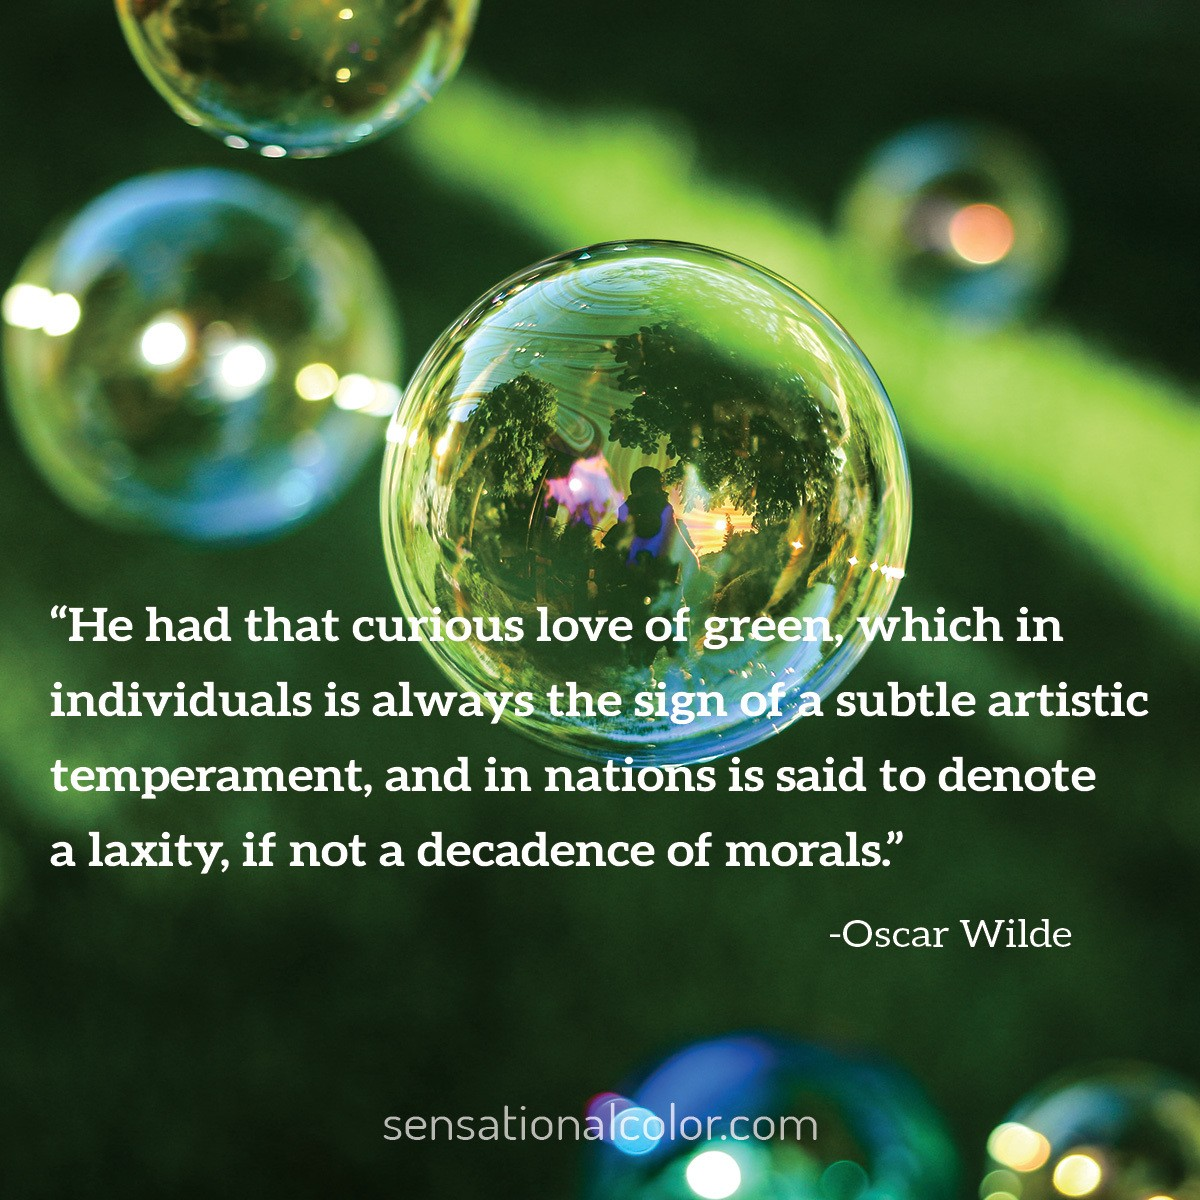 """He had that curious love of green, which in individuals is always the sign of a subtle artistic temperament, and in nations is said to denote a laxity, if not a decadence of morals."" - Oscar Wilde"